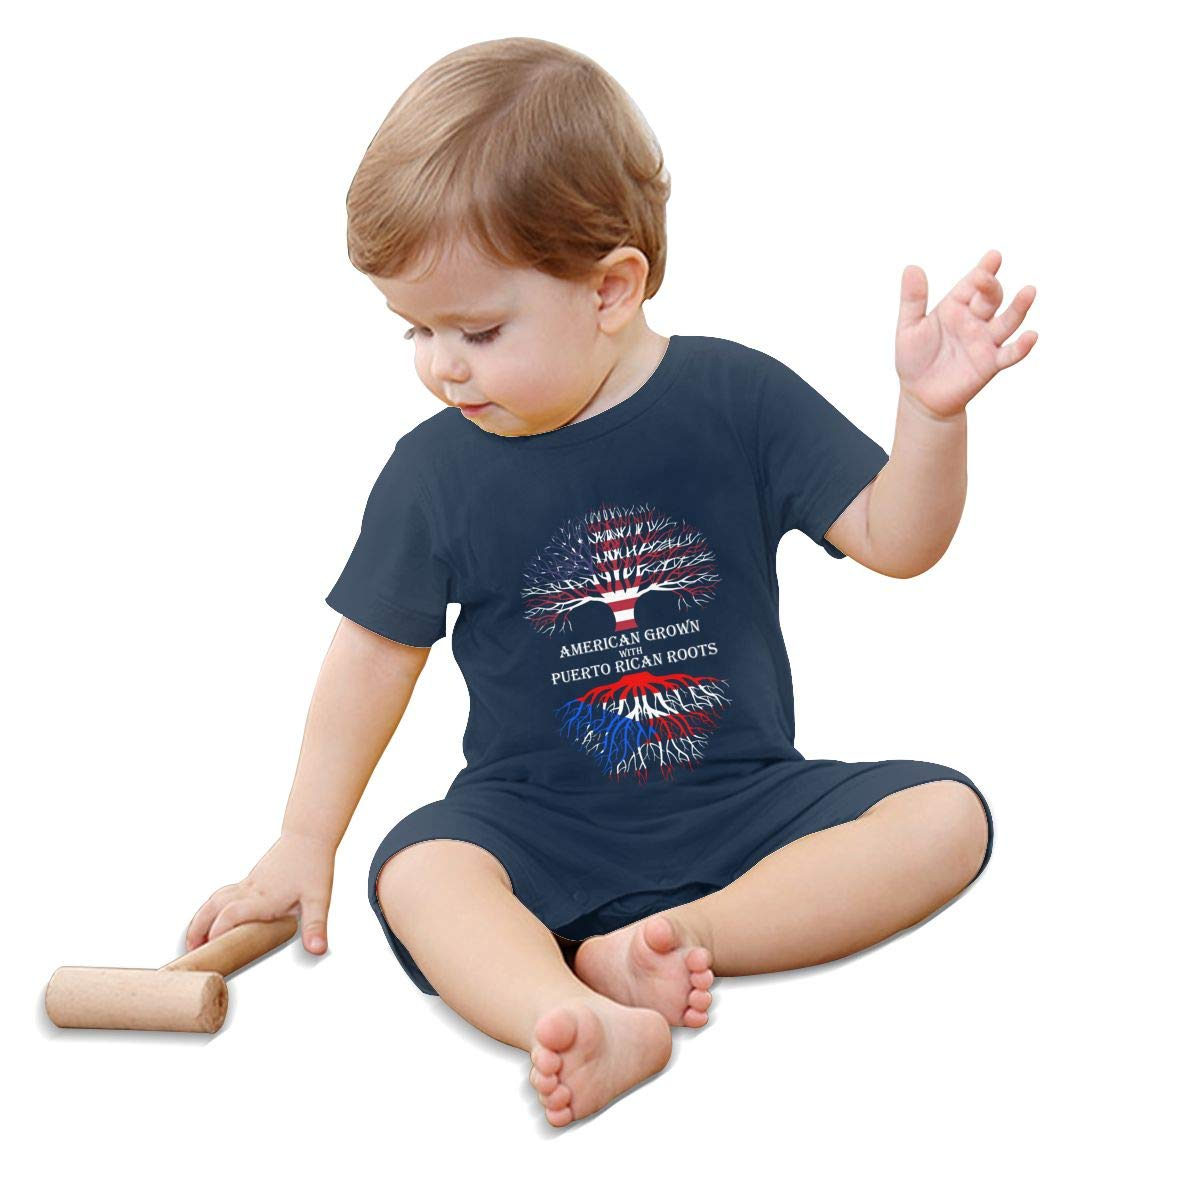 A1BY-5US Baby Infant Toddler Romper Jumpsuit American with Puerto Rican Roots Cotton Short Sleeve Infant Clothing